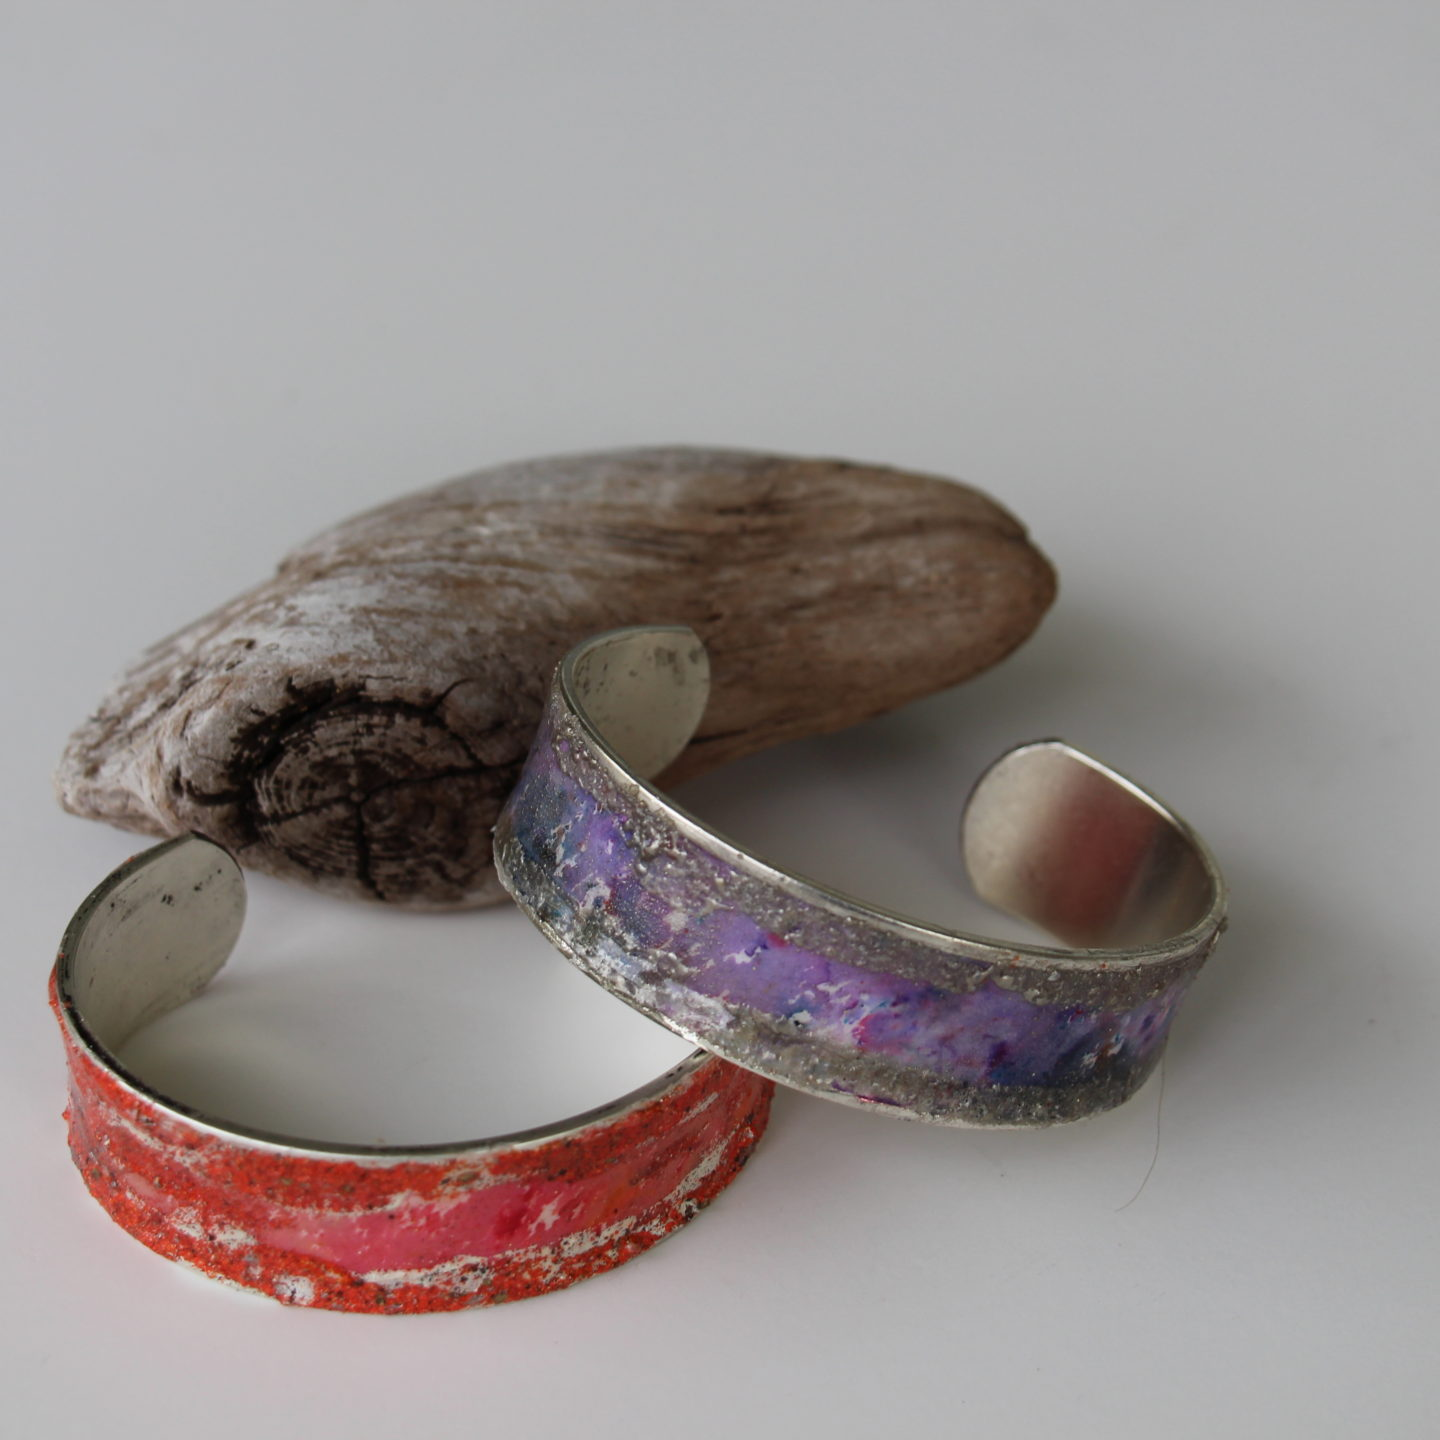 Working with paper, metal, fibre and beads: An artist's delight!